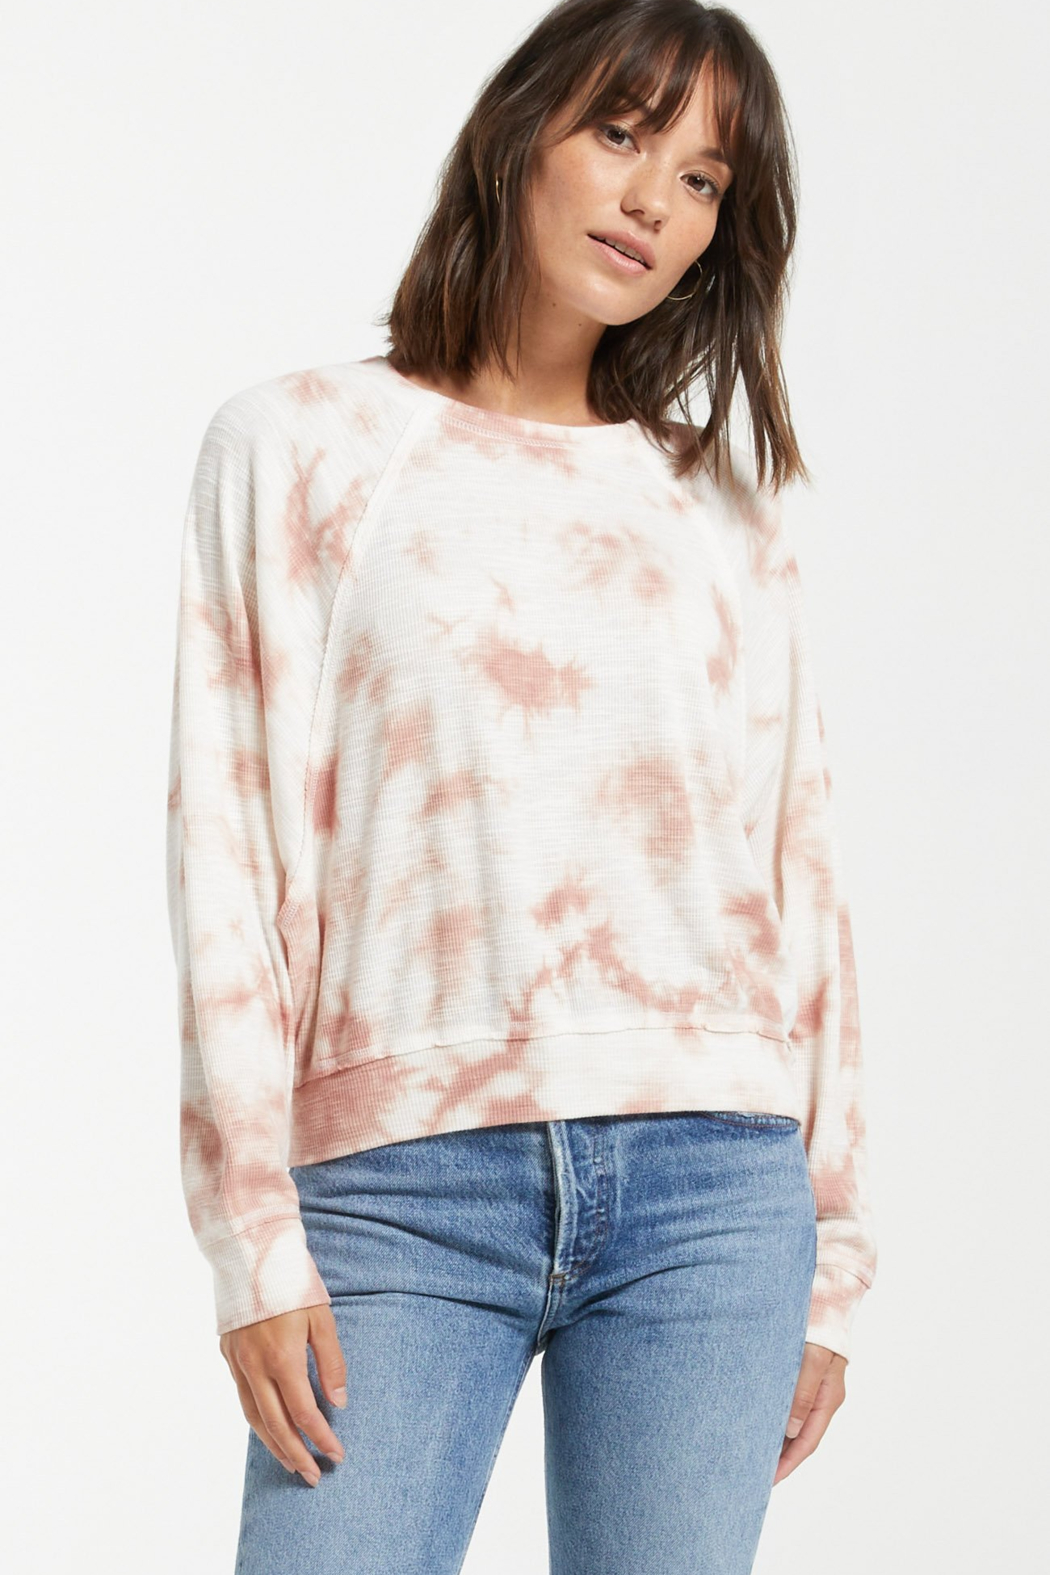 z supply Claire Cloud Tie-Dye Top - Main Image